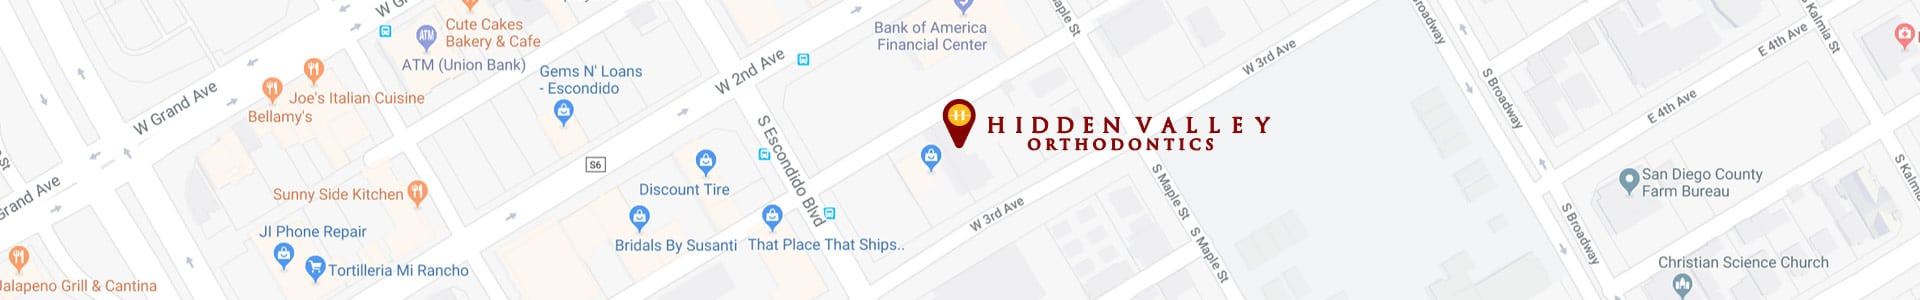 Hidden Valley Orthodontics in Escondido, CA